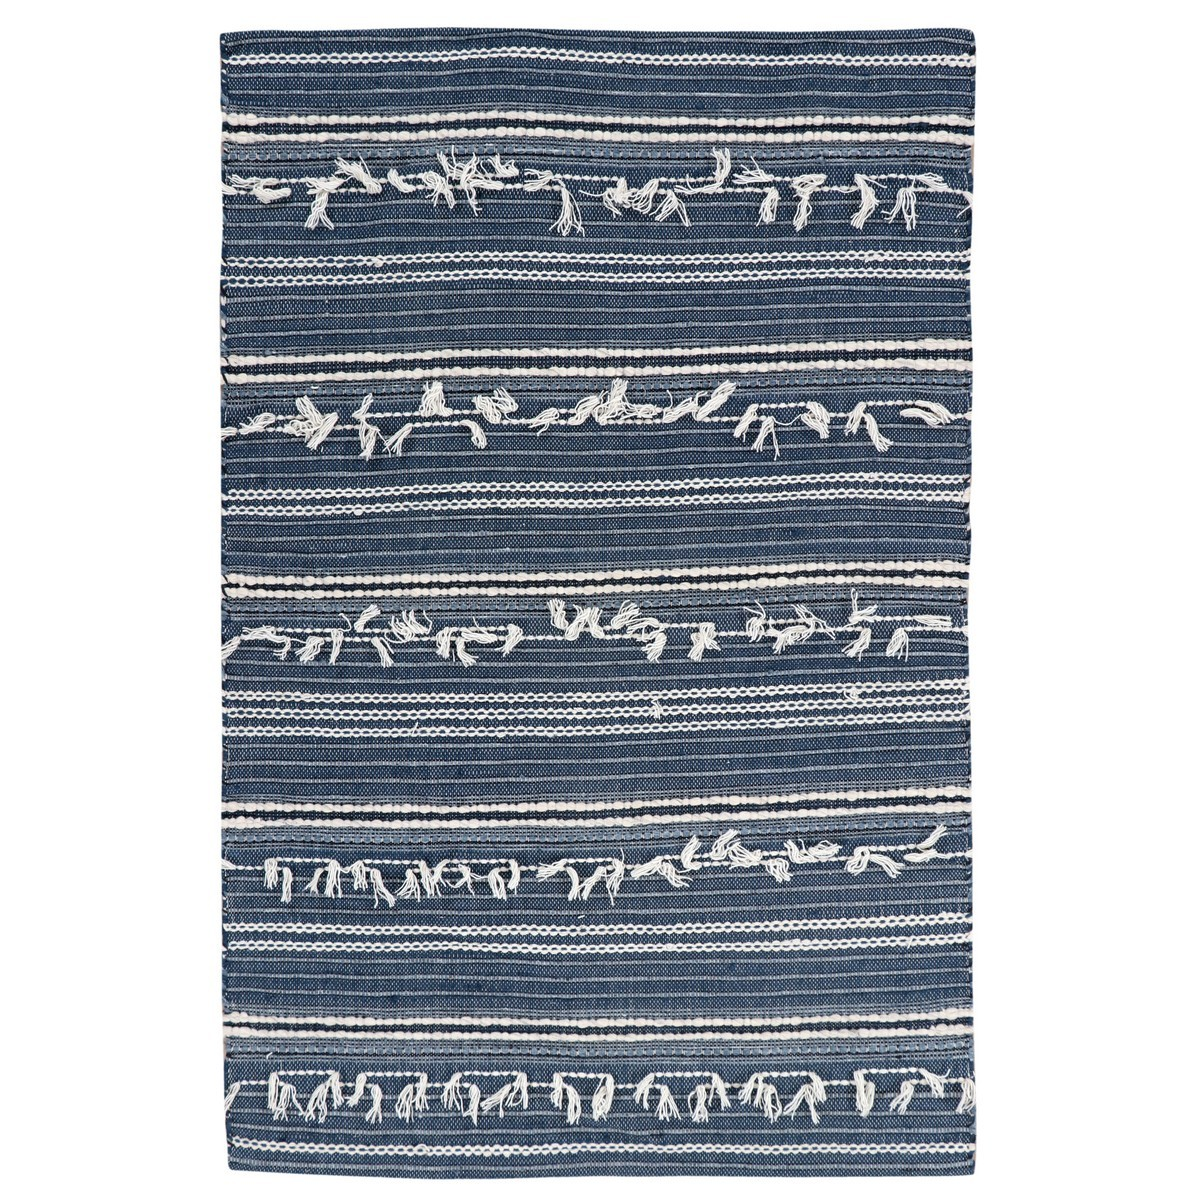 Noir Handwoven Wool Rug, 230x160cm, Denim